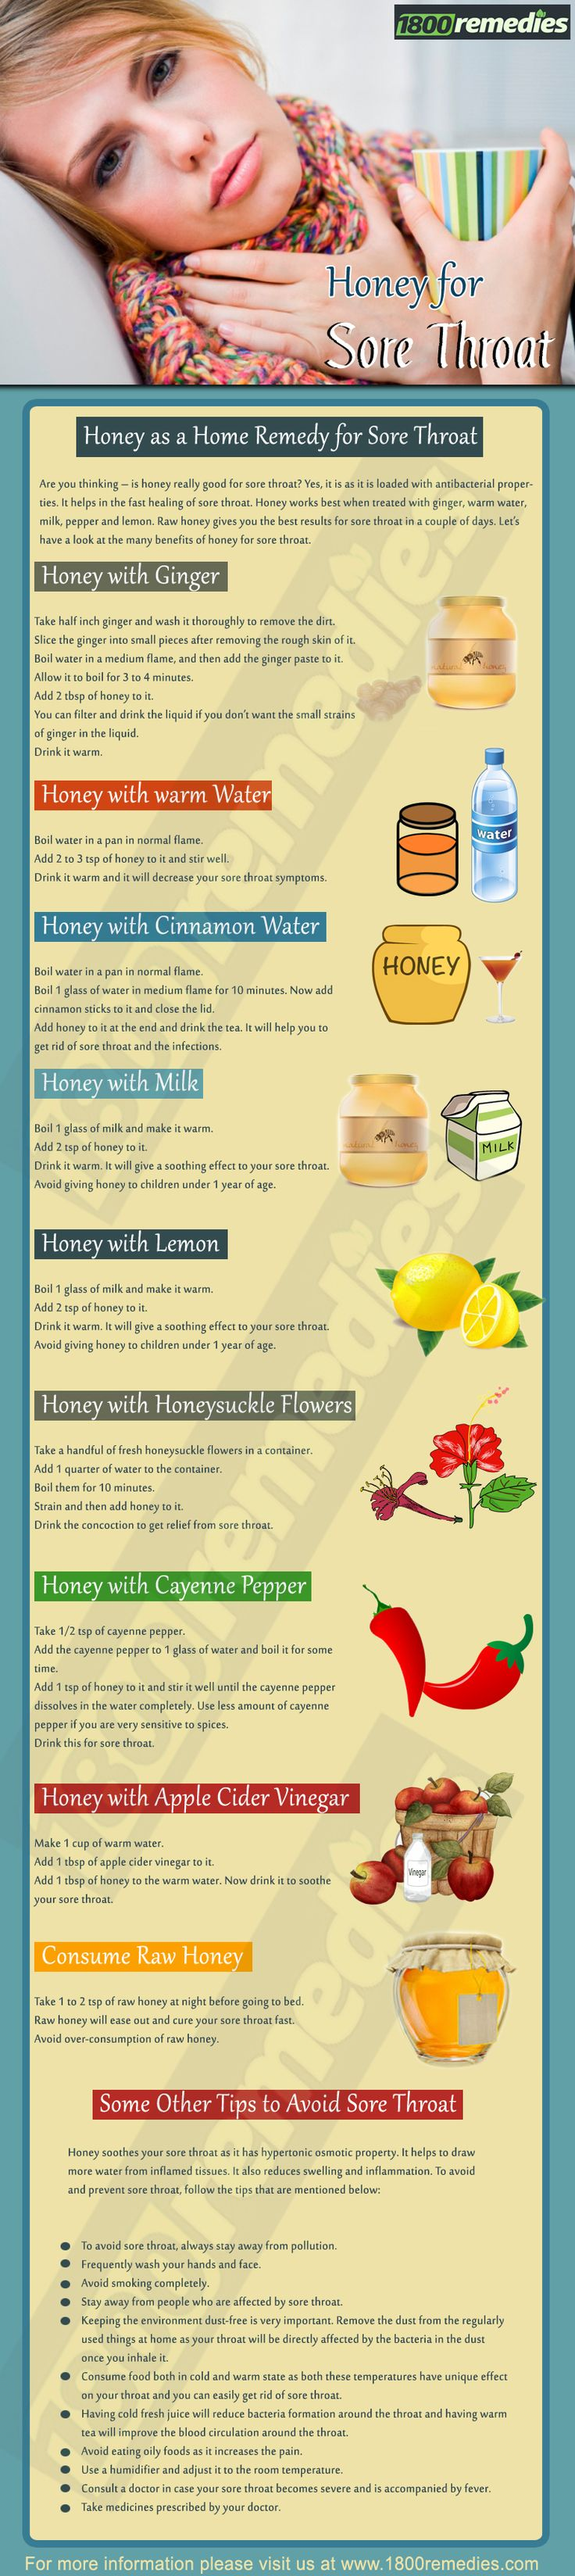 Are you thinking – is honey really good for sore throat? Yes, it is as it is loaded with antibacterial properties. It helps in the fast healing of sore throat